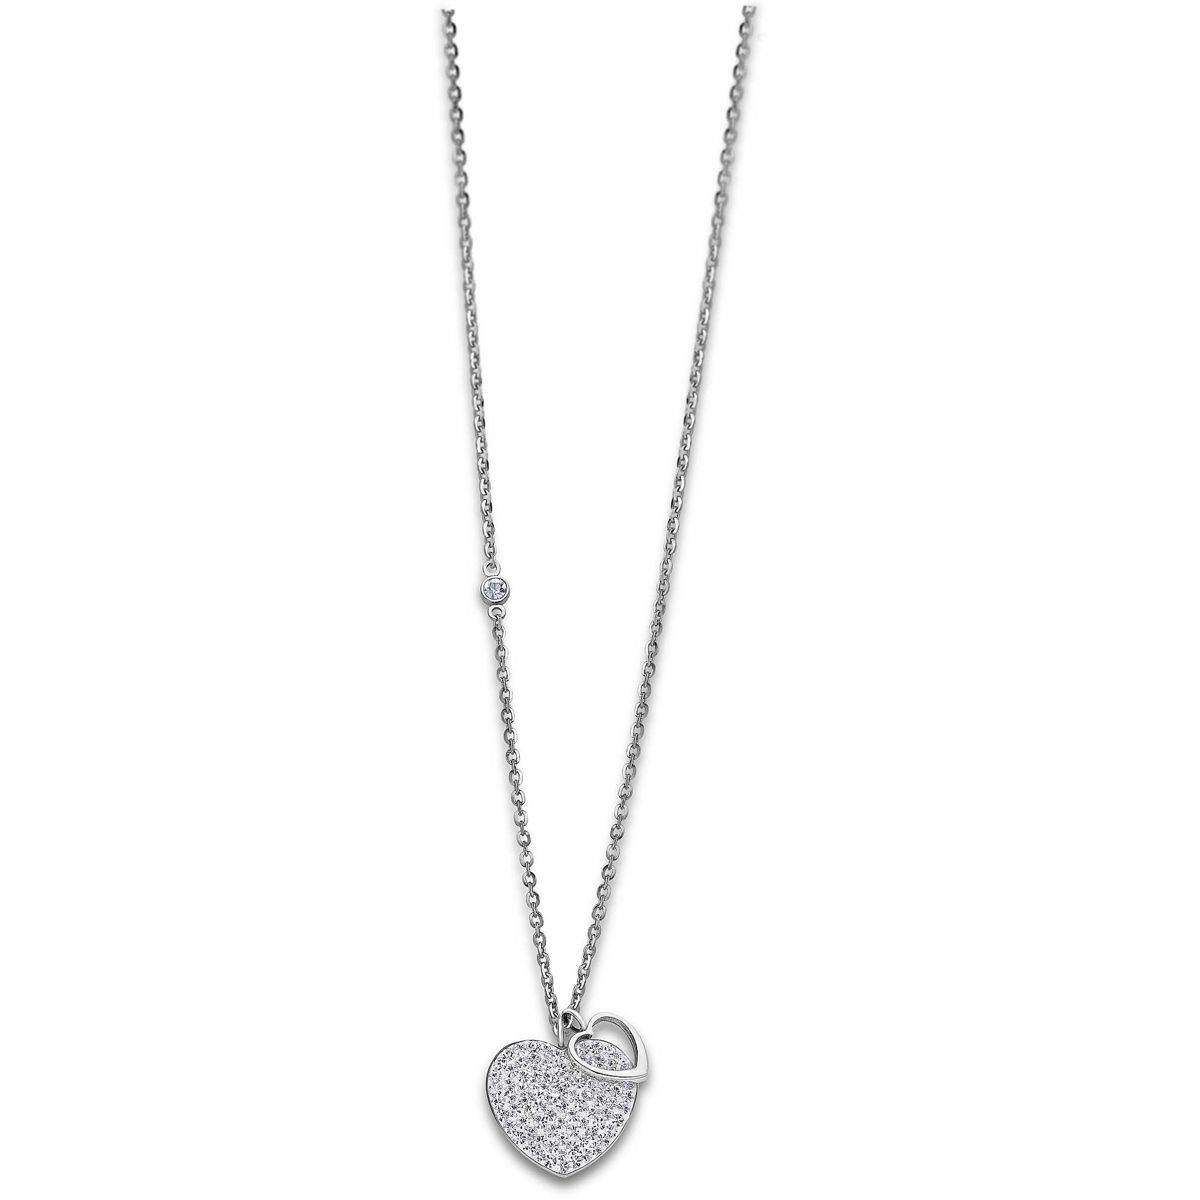 ZIRCONIA HEART NECKLACE White LOTUS Style